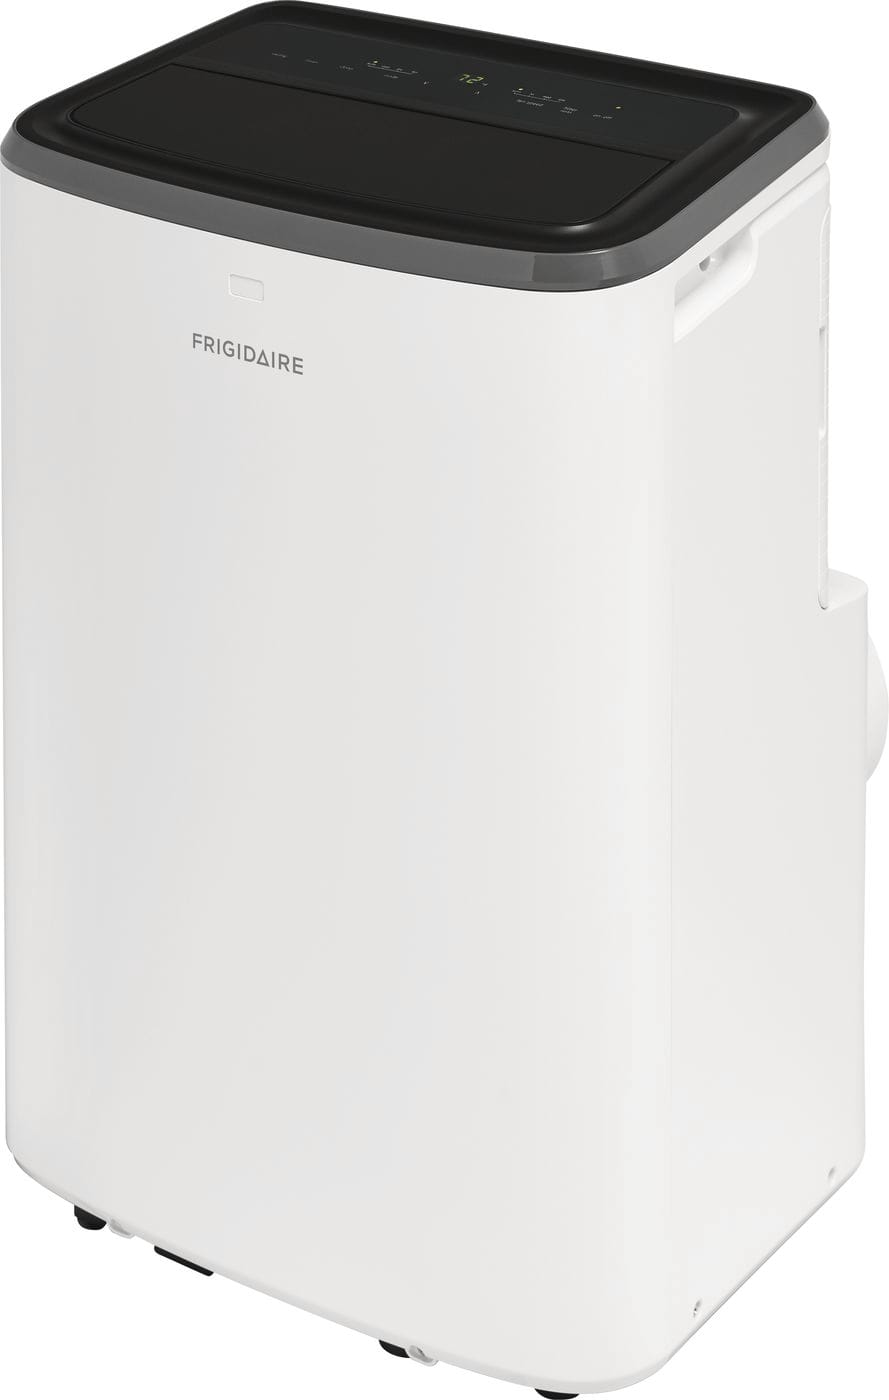 Model: FFPA1022U1 | Frigidaire 10,000 BTU Portable Room Air Conditioner